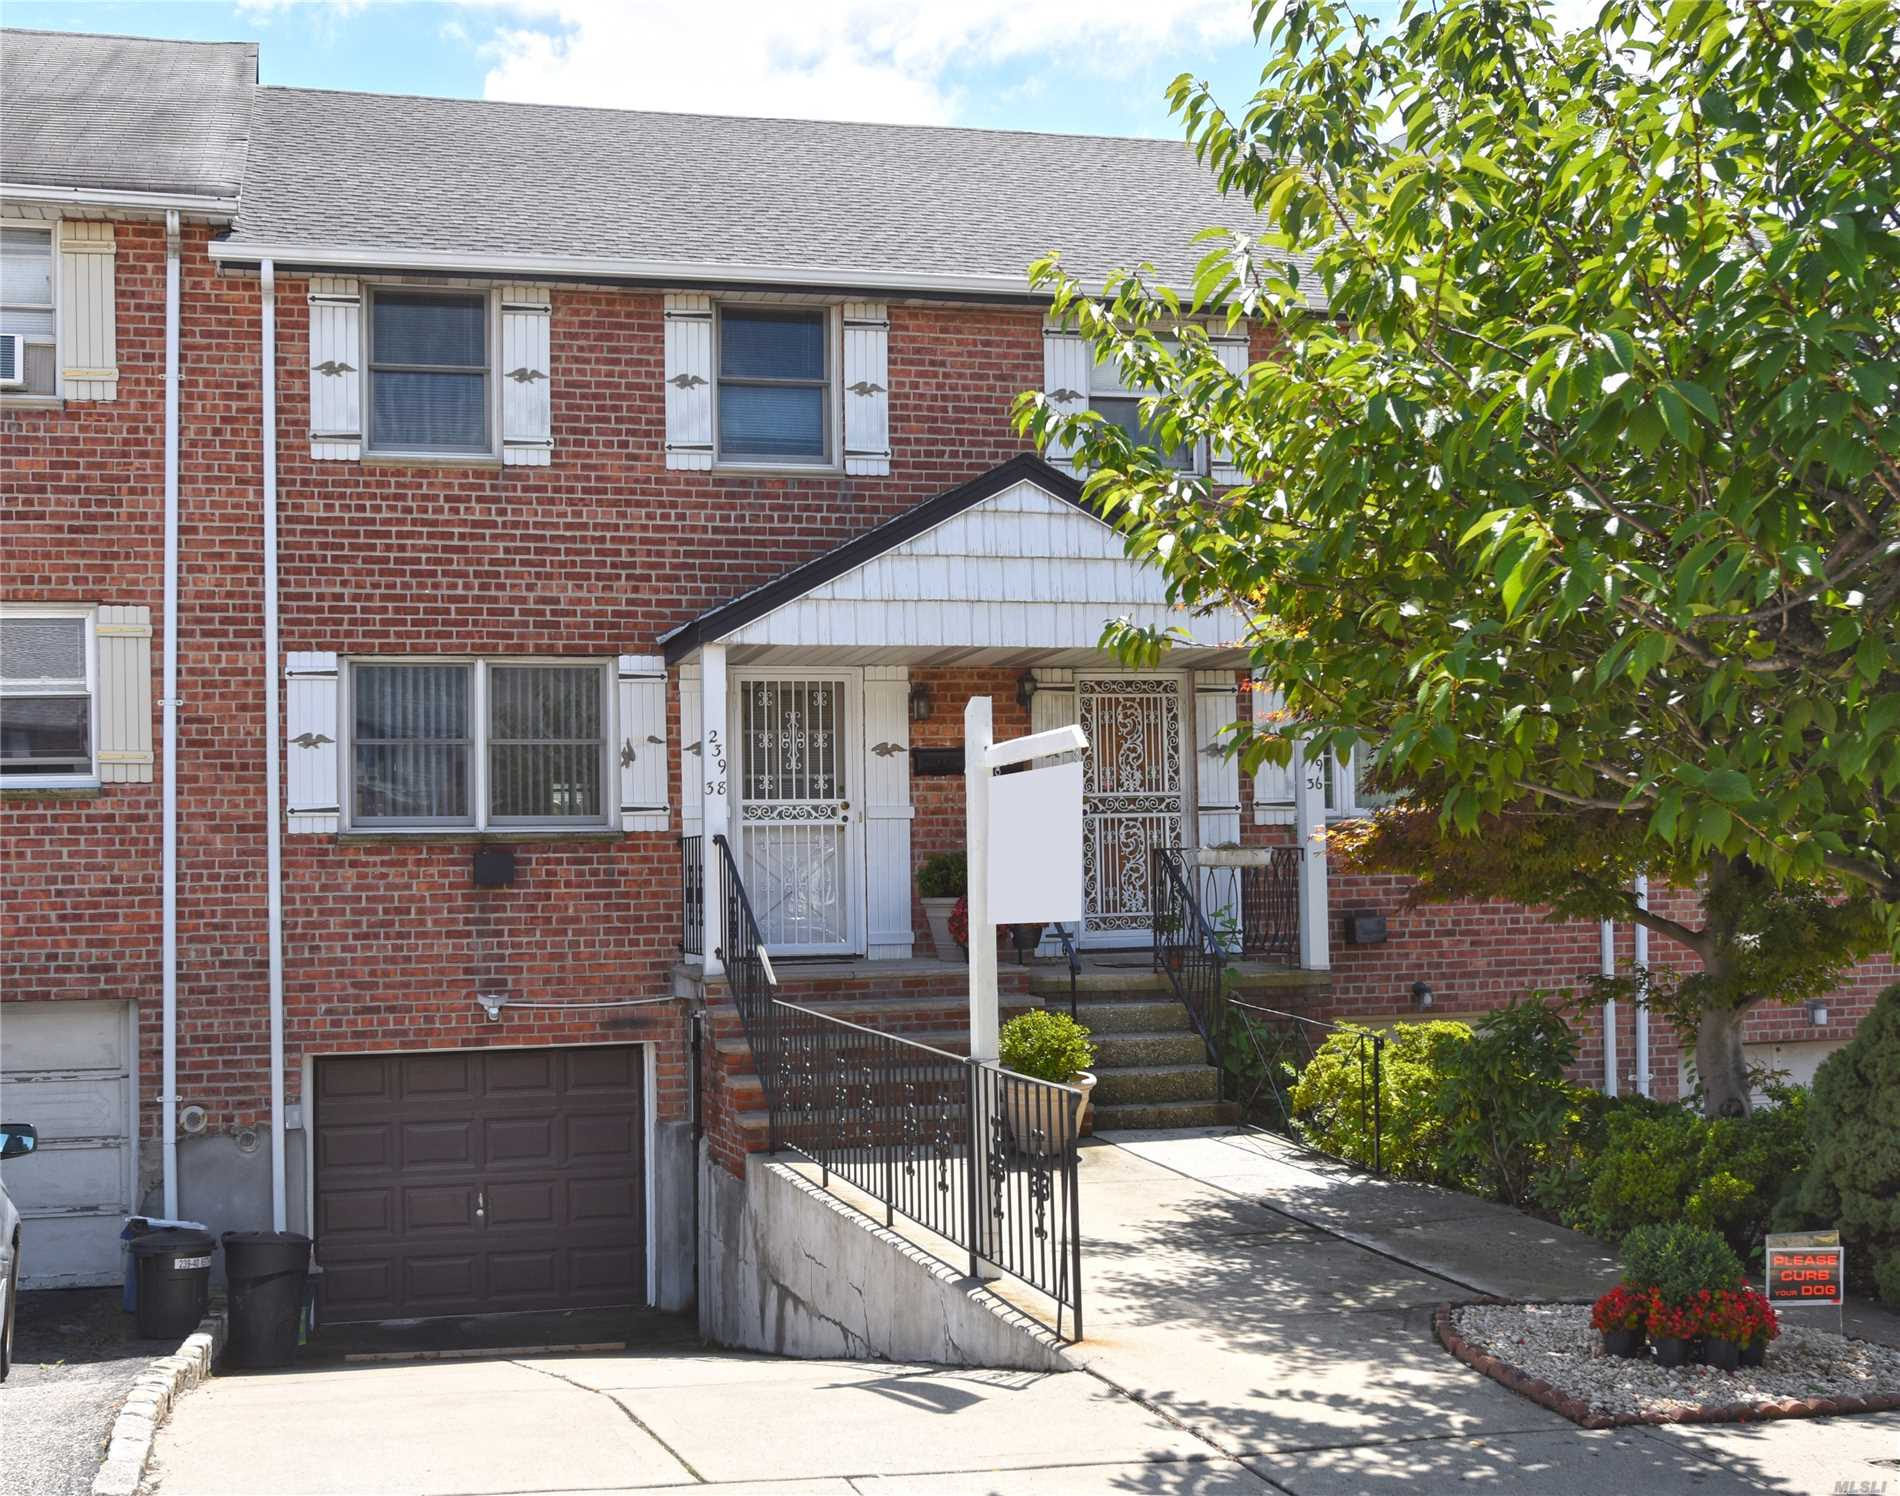 All Brick One Family Is Centrally Located In Douglaston On A Quiet Residential Block. Beautiful Open Plan Layout In Super Mint Condition. New Kitchen & New Bath & New Central Ac. Sliding Doors Off Of Large Eat In Kitchen Which Leads To Private Yard. Finished Basement With Sep/Ent. Great Flow Of Entertaining.Walk To Fairway Supermarket And Buses. School District 26.